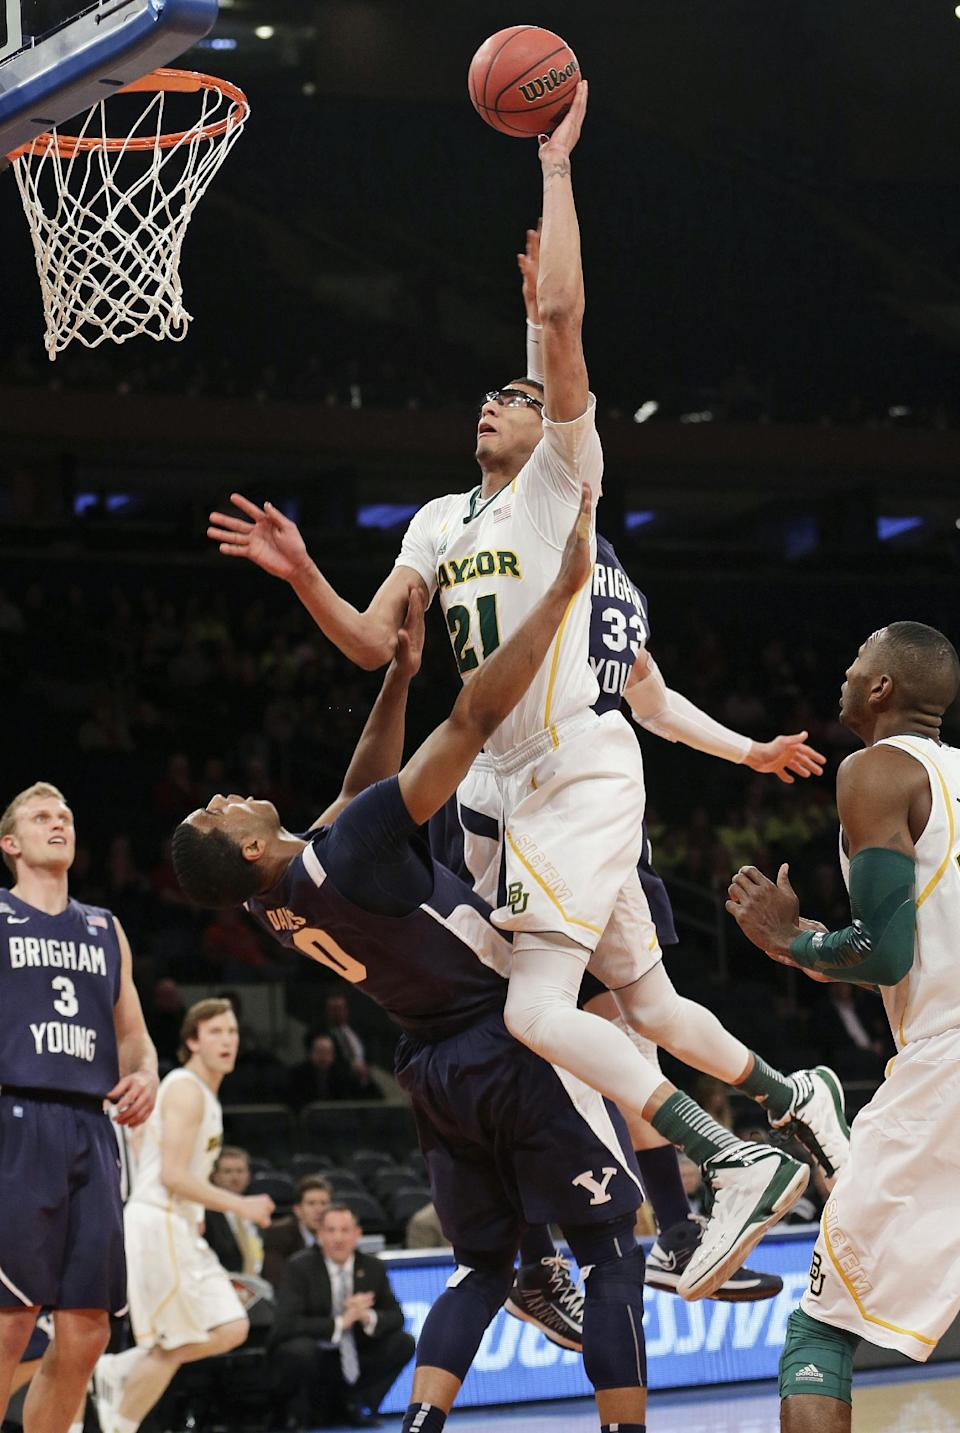 Baylor's Isaiah Austin (21) shoots over Brigham Young's Brandon Davies (0) during the first half of an NIT semifinal basketball game Tuesday, April 2, 2013, in New York. (AP Photo/Frank Franklin)